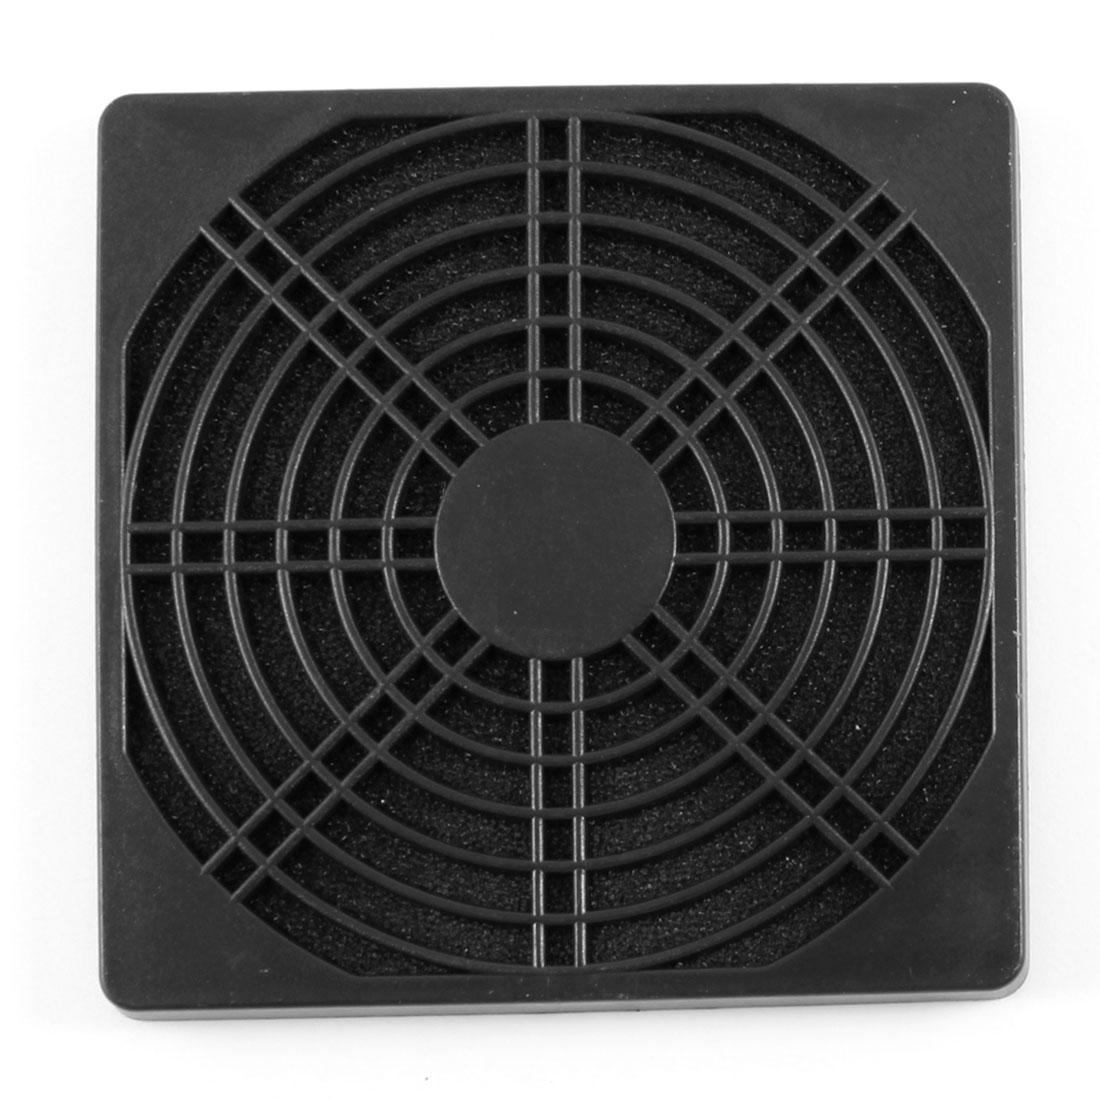 PC Case Fan 12.2cm 122mm Plastic Filter Dust Guard Dustproof Mesh Black